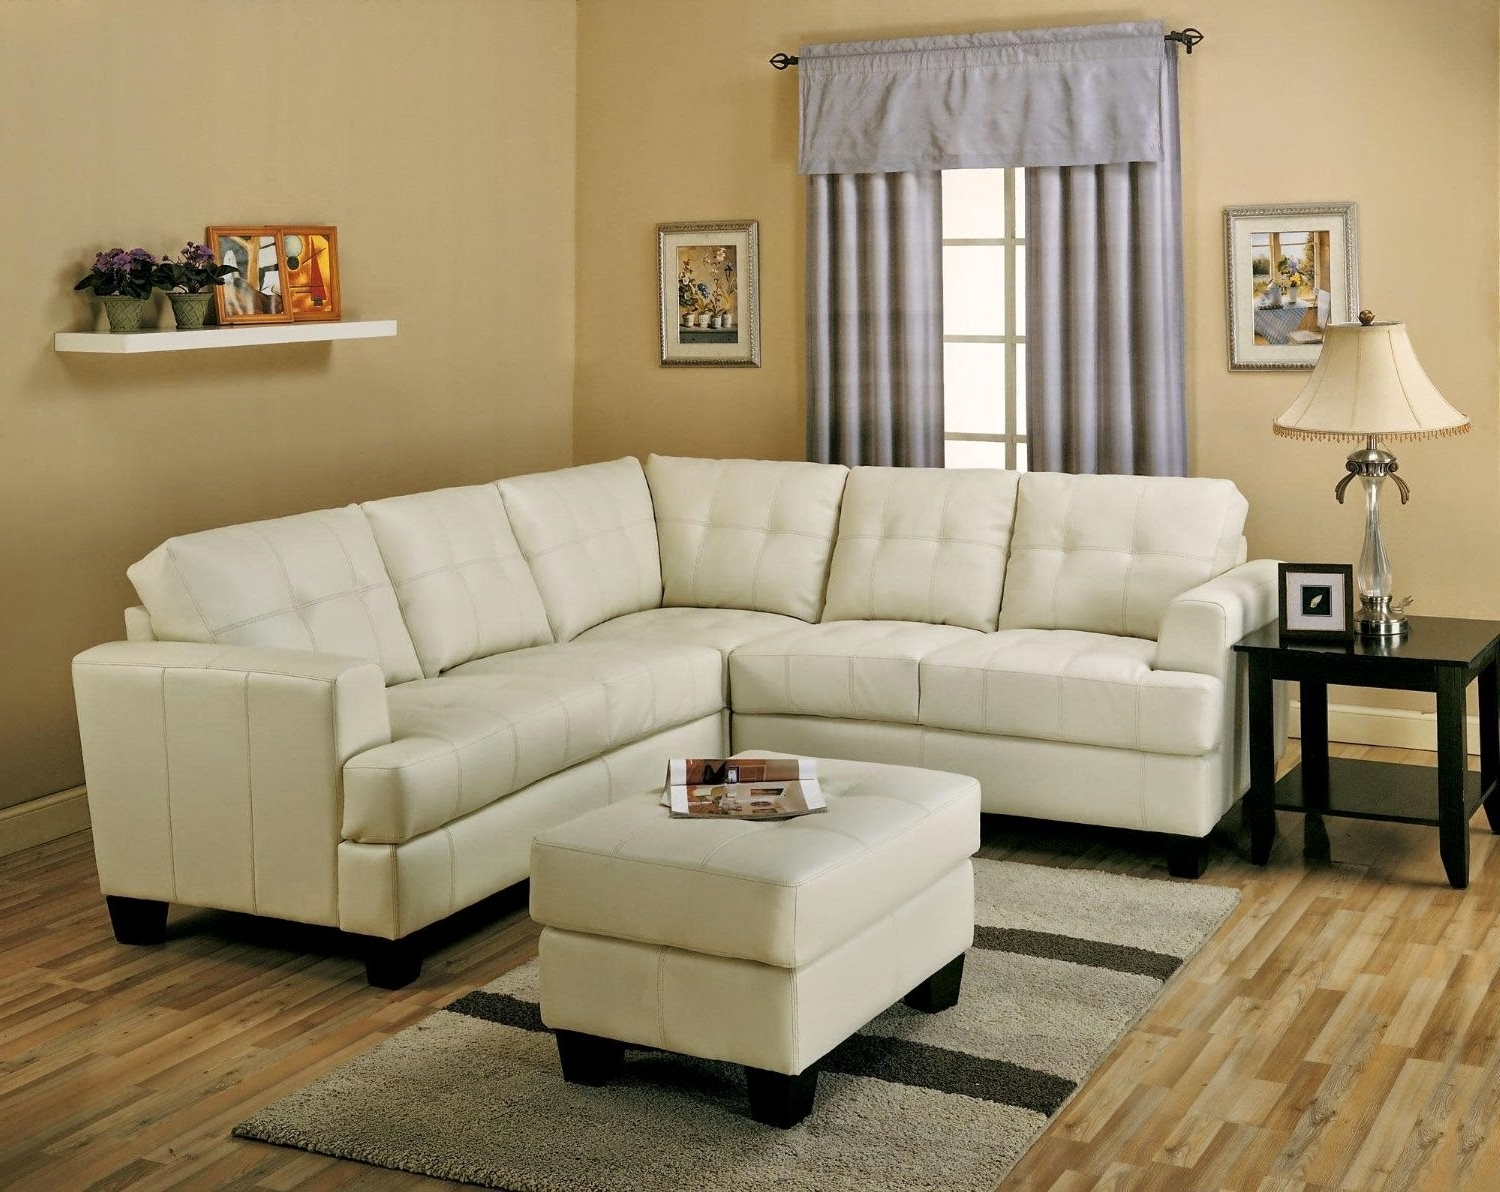 Best And Newest Good Quality Sectional Sofas – Cleanupflorida For Good Quality Sectional Sofas (View 2 of 20)